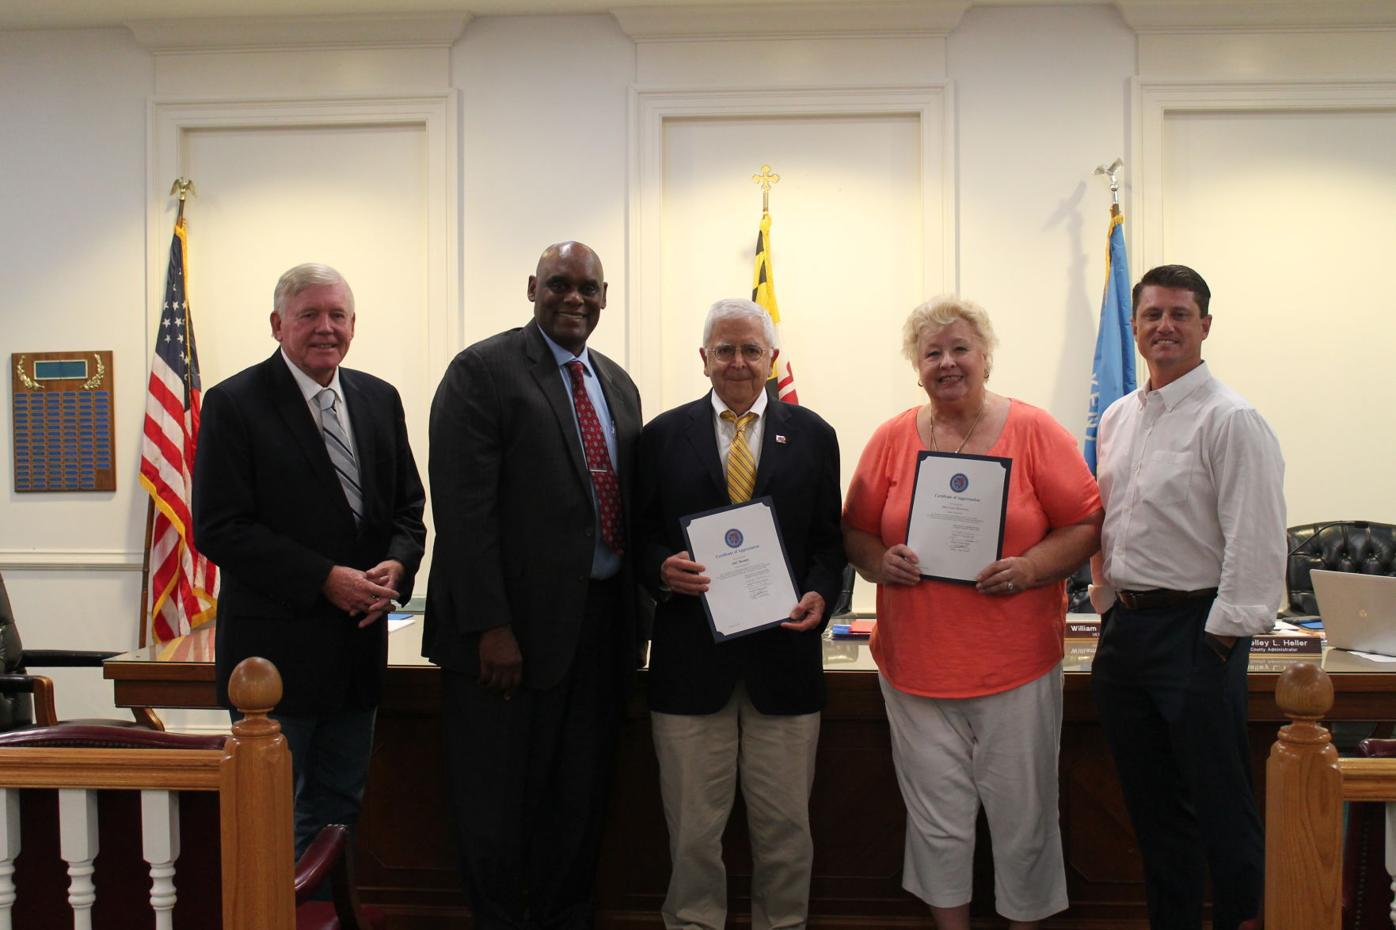 Pet trailer donors recognized